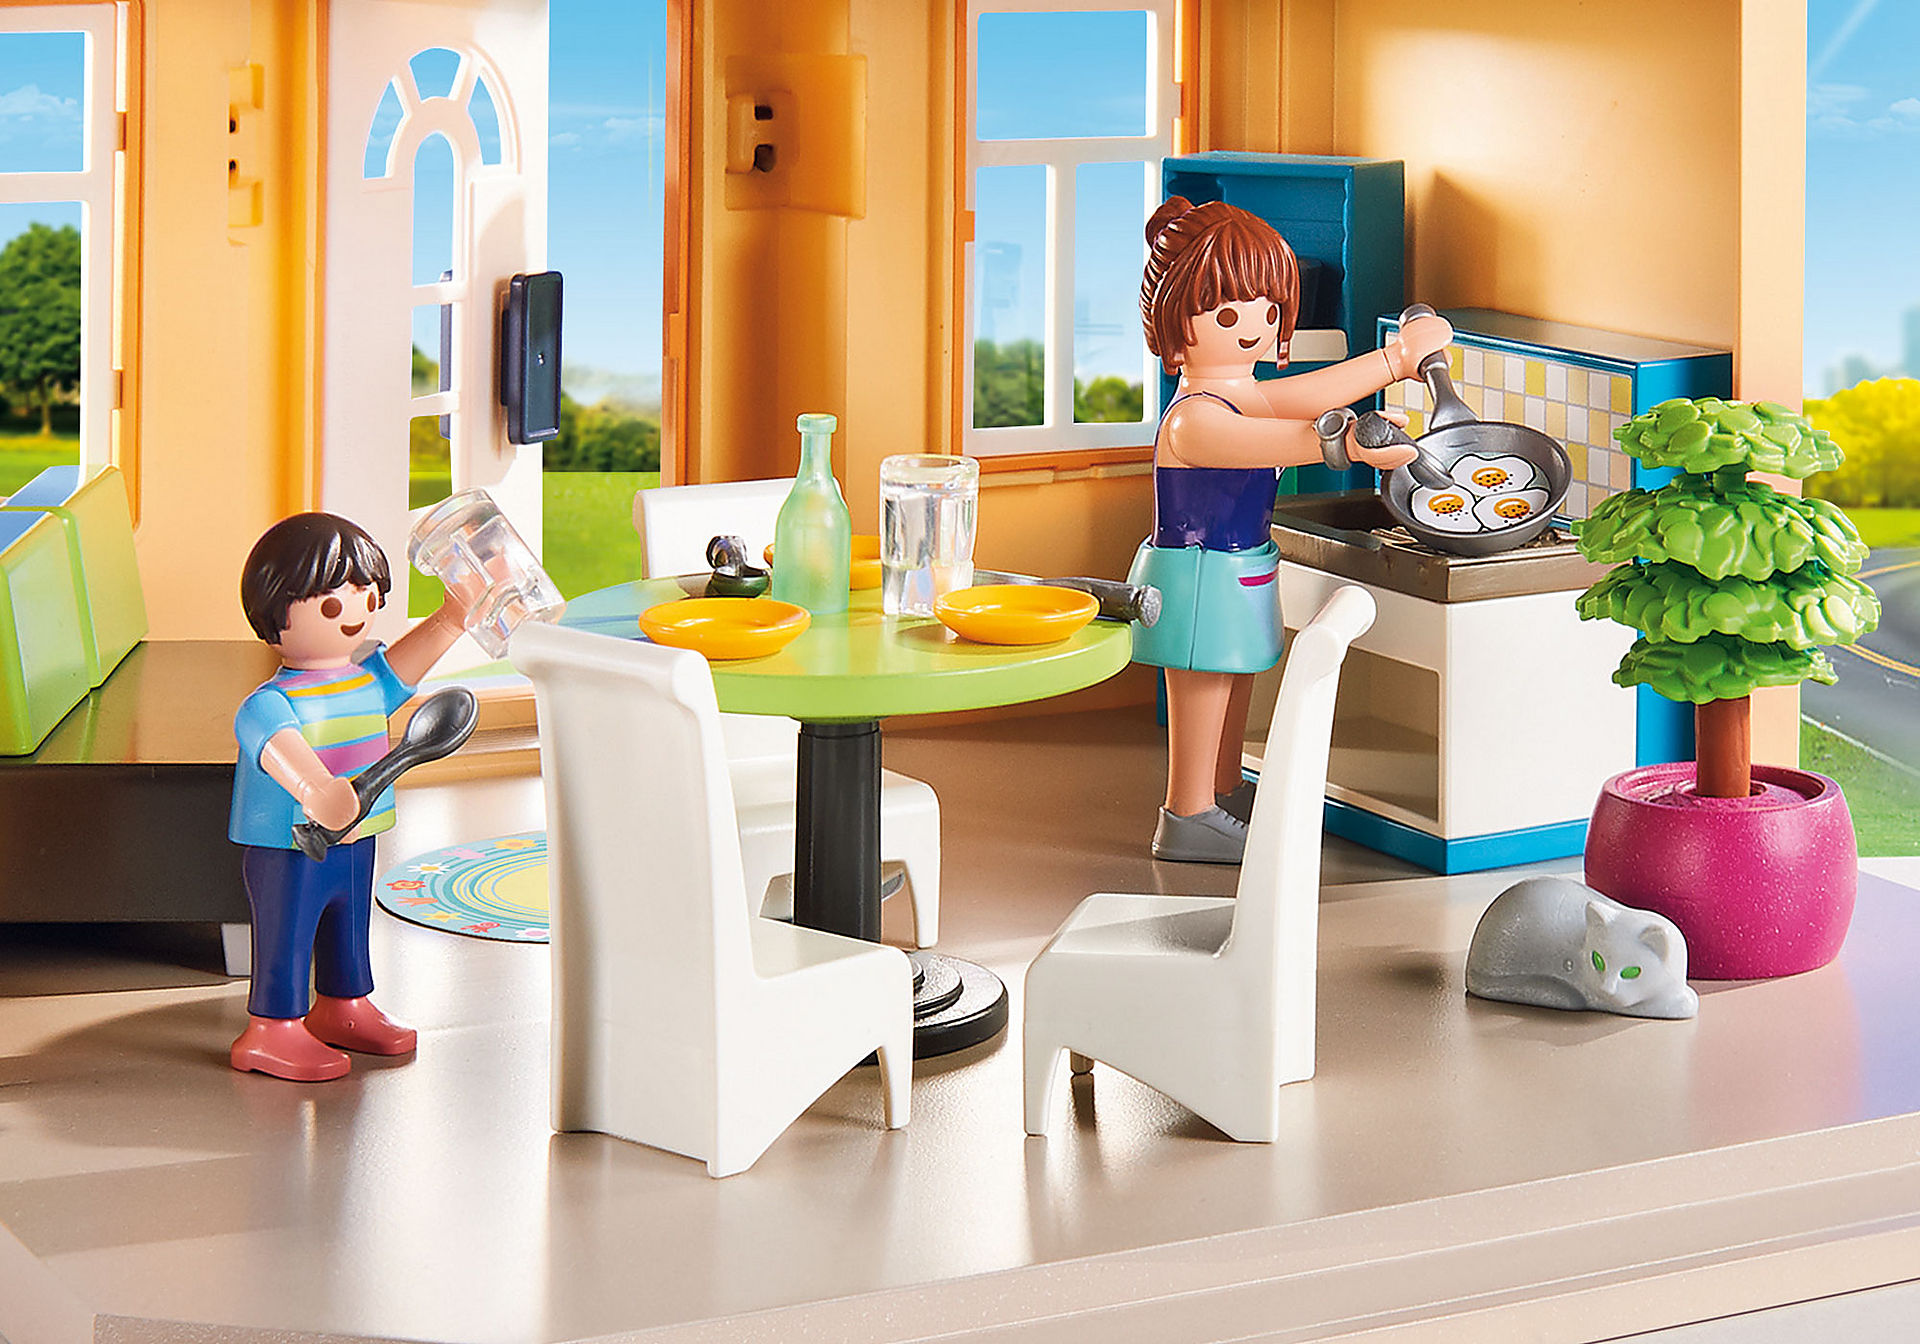 http://media.playmobil.com/i/playmobil/70014_product_extra1/Mein Stadthaus